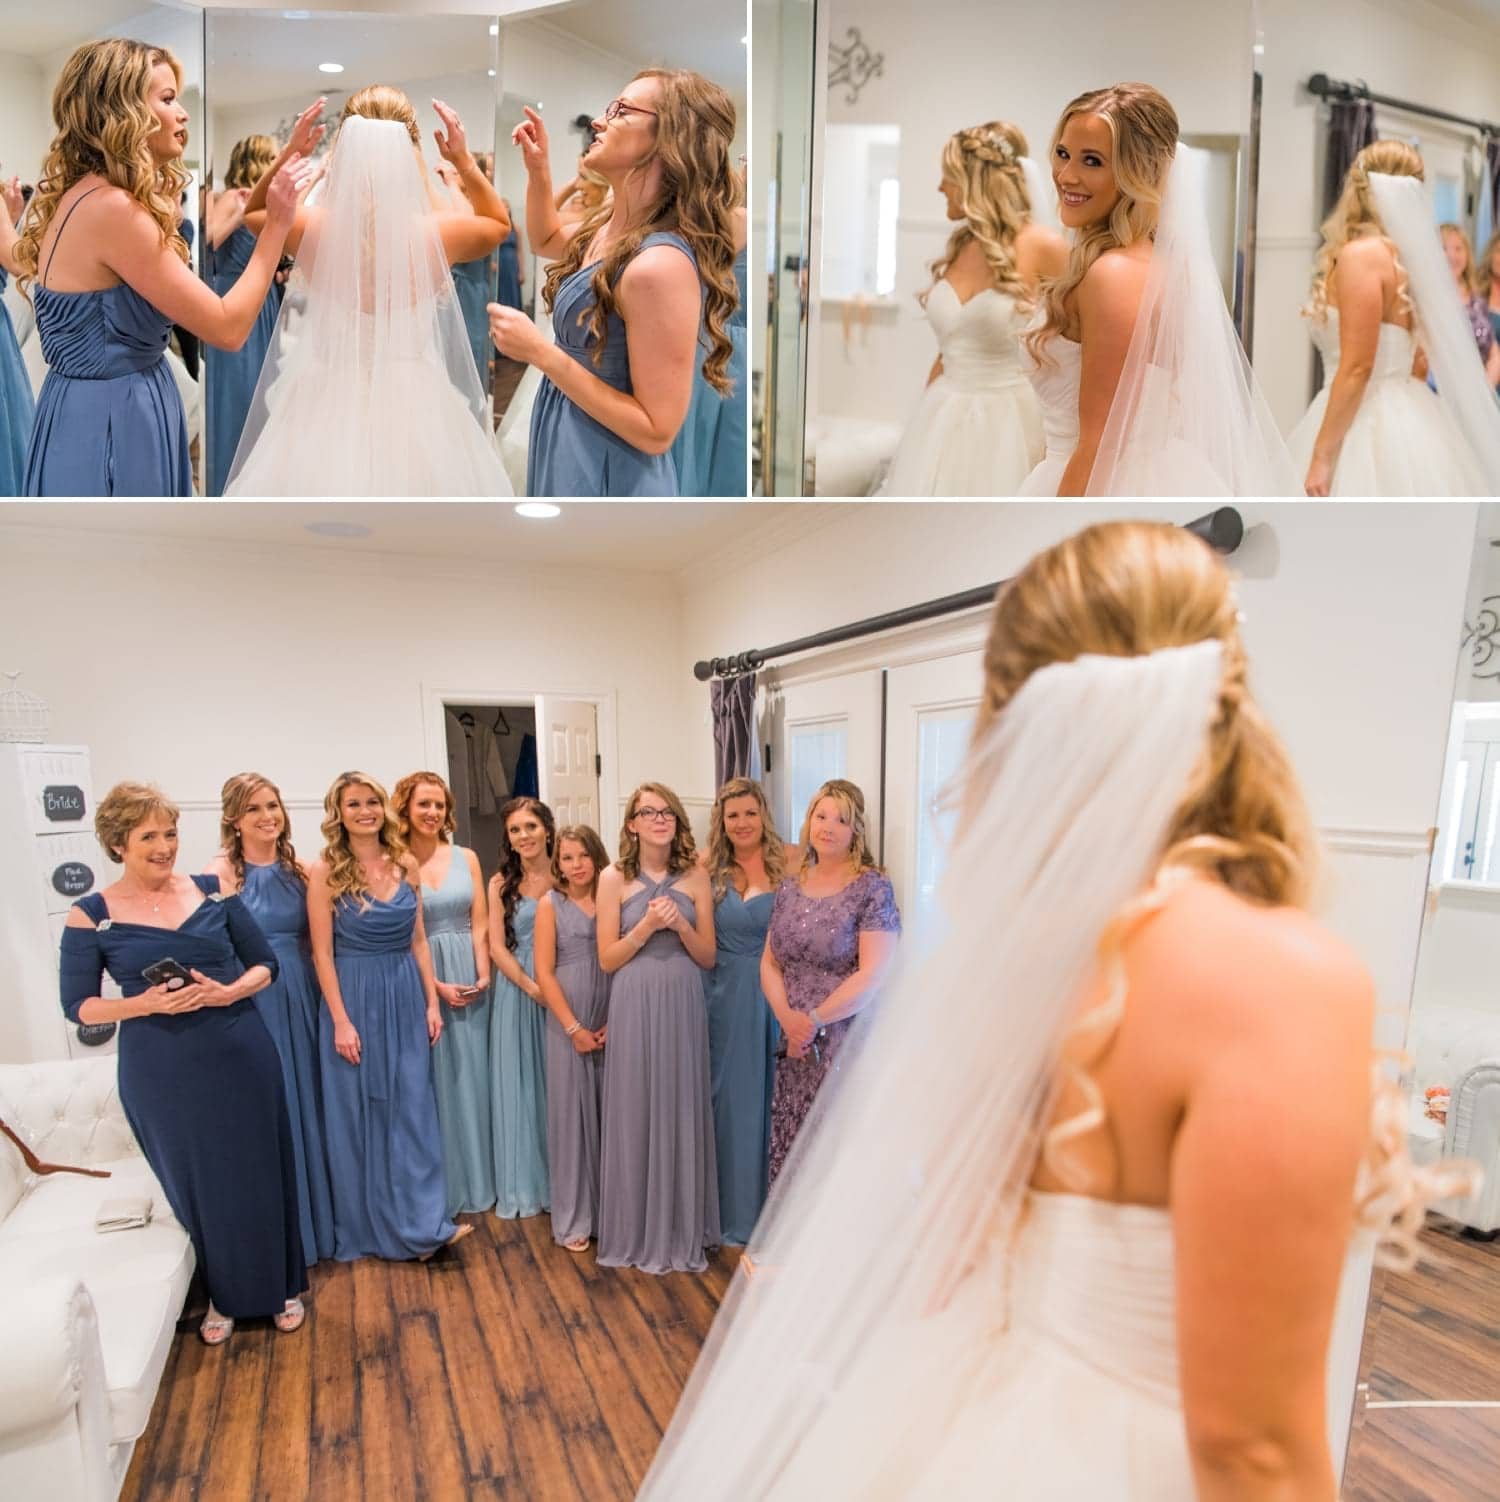 Bridesmaids reaction to the bride in her dress.